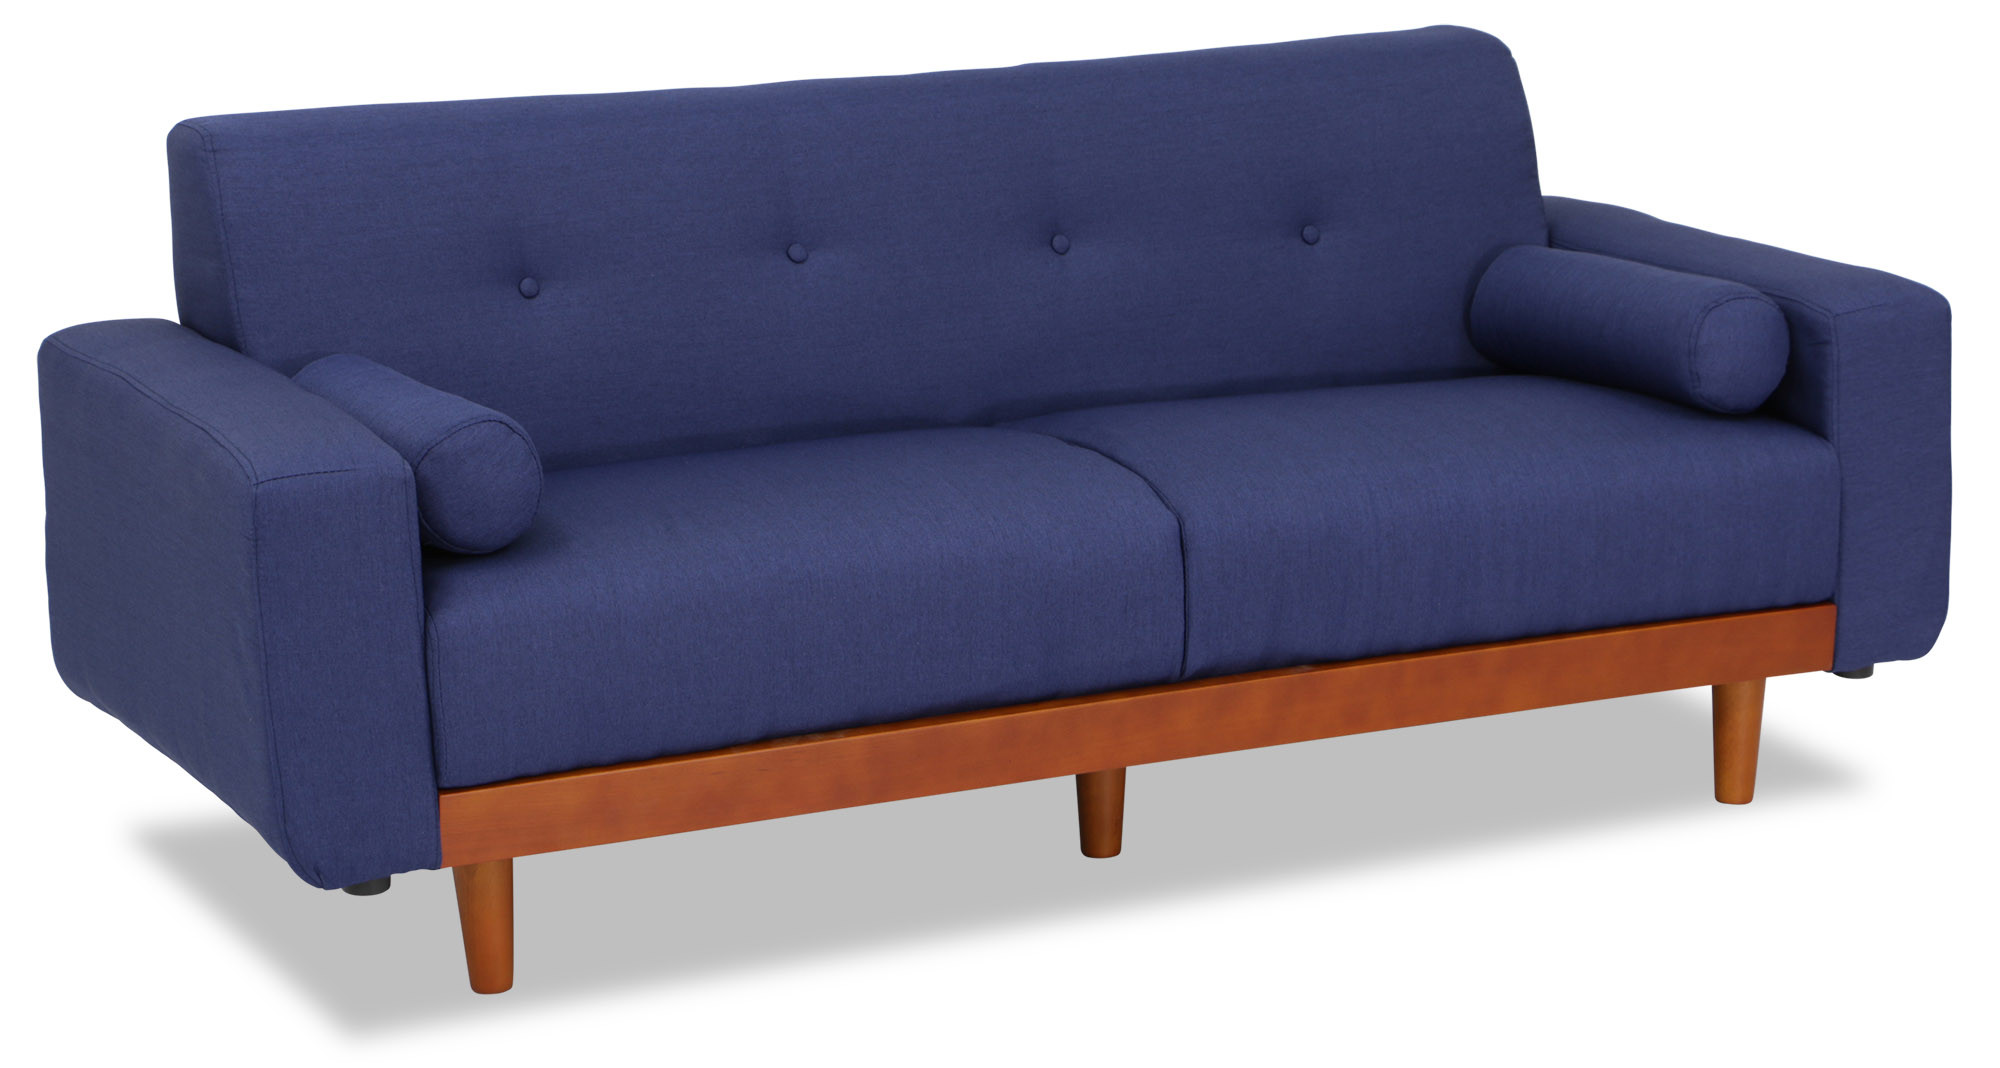 couches seater scandinavian blue sofa miyako sofas beds couch img with